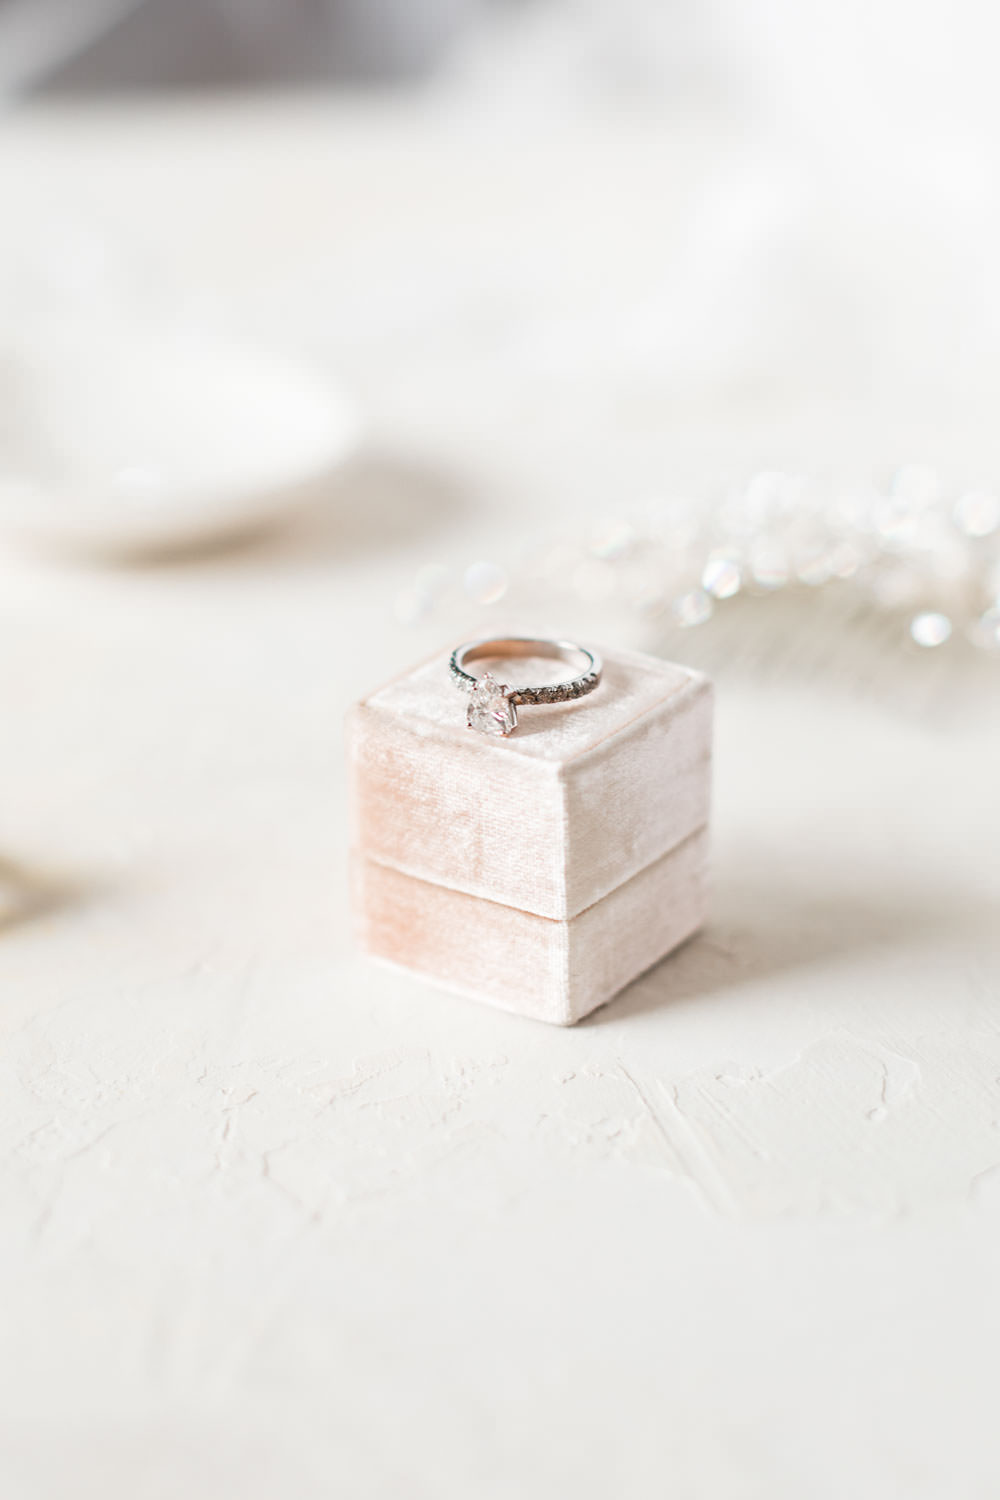 Diamond engagement ring on a pink Mrs Box velvet ring box, Cavin Elizabeth Photography